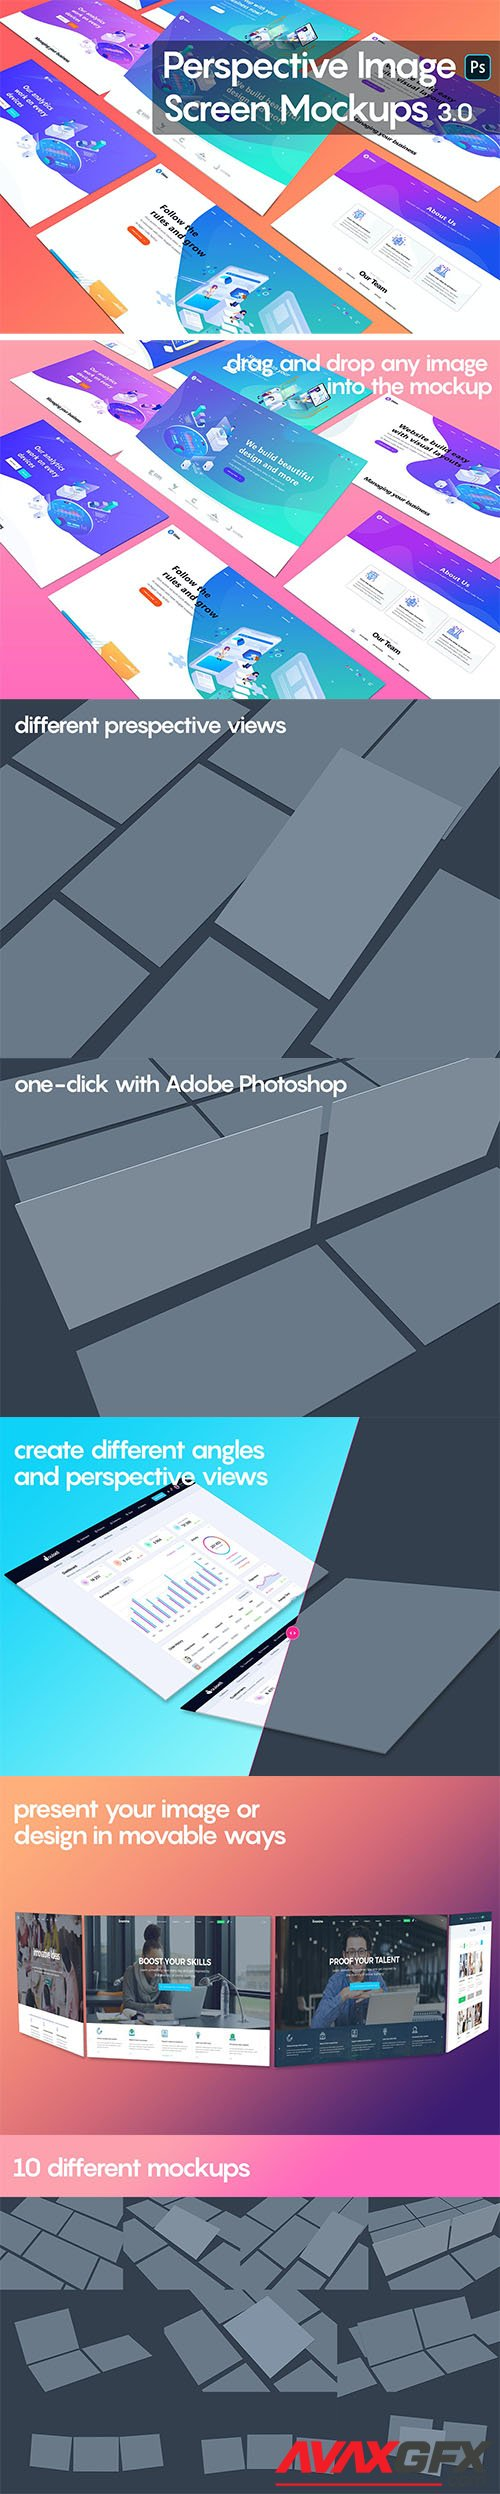 Perspective Image Screen Mockups 3.0